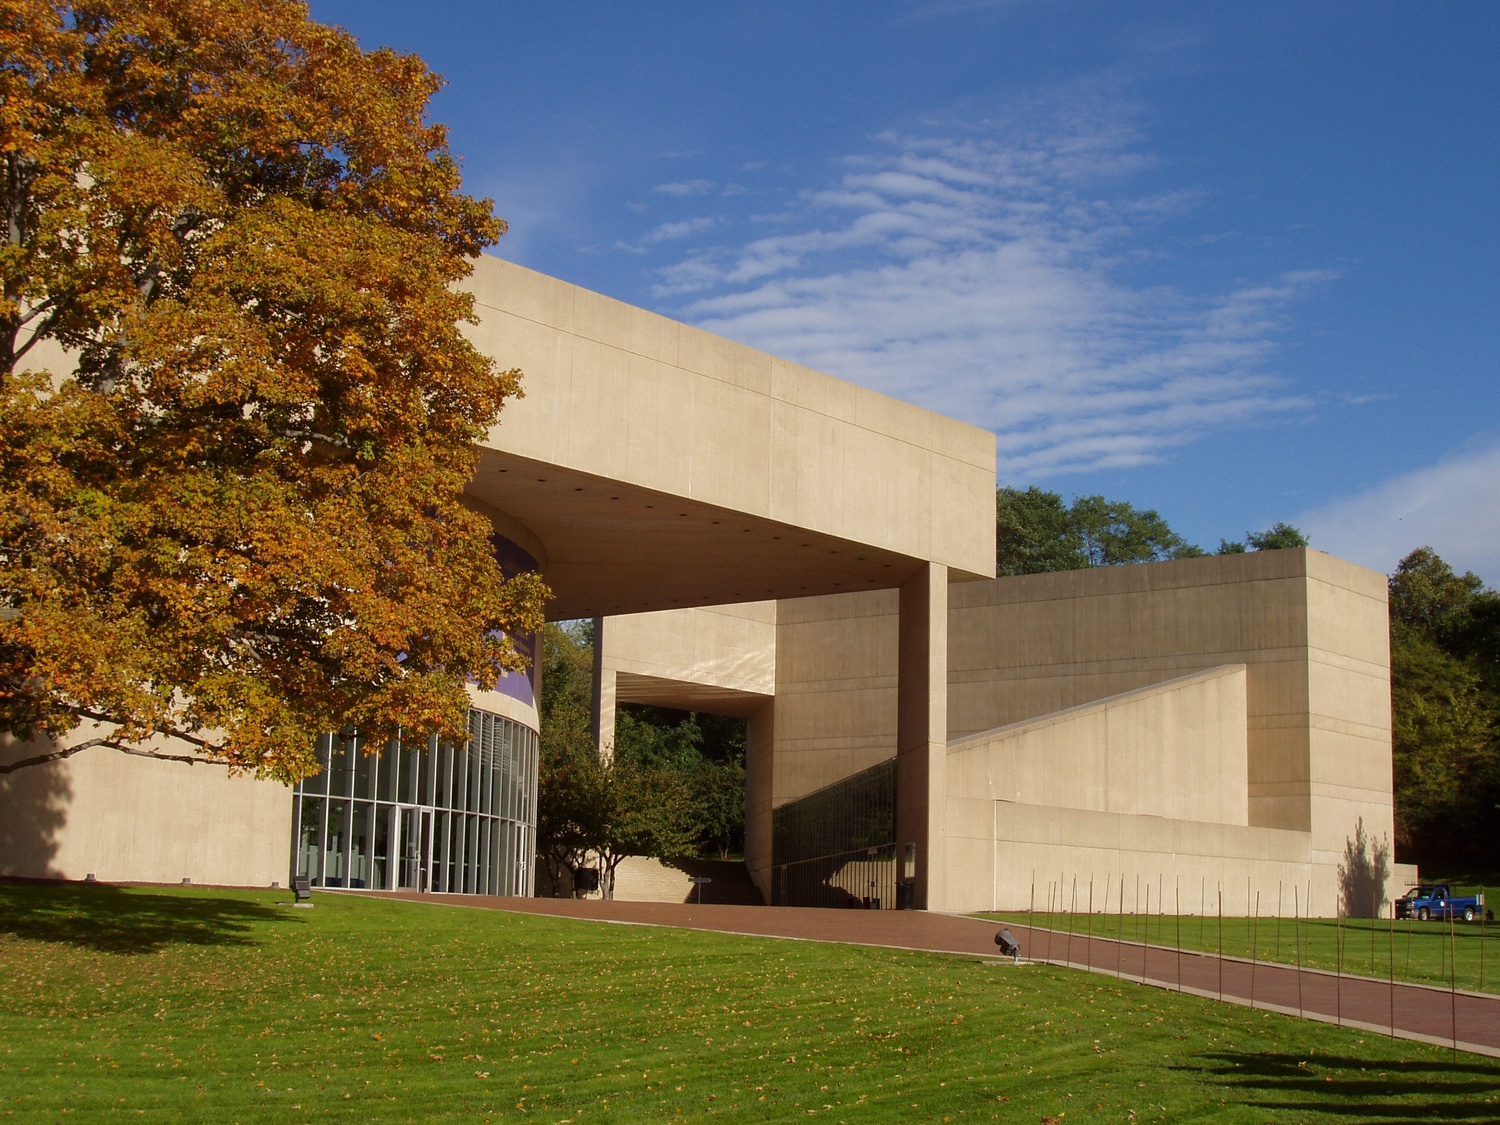 The Paul Mellon Arts Center at Choate Rosemary Hall in Wallingford, Connecticut, designed by Pei.